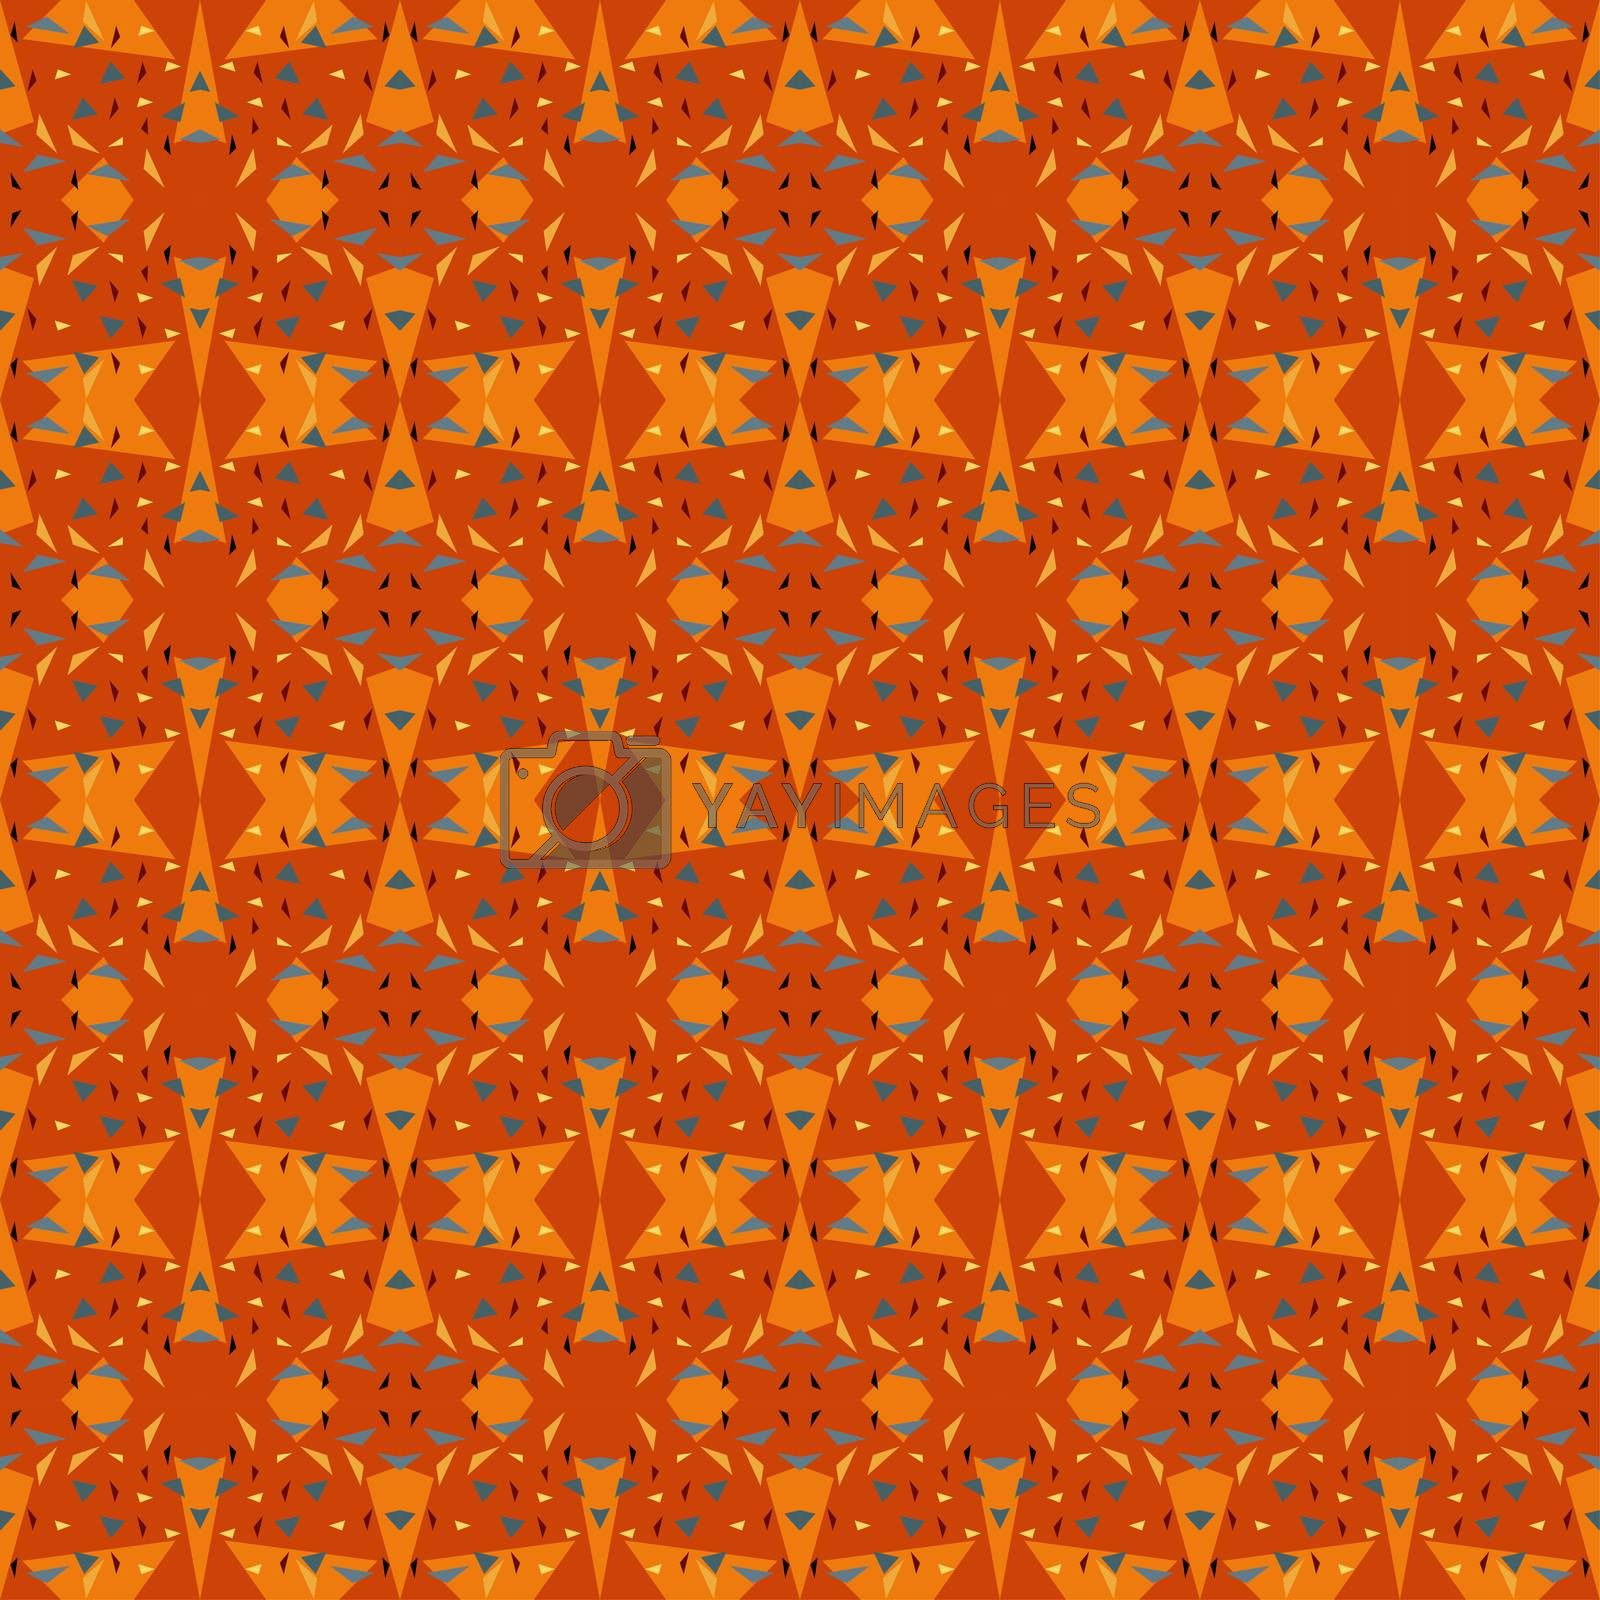 Abstract vector seamless geometric pattern for fabric, textile, wrapping paper, wallpaper, web design, background.